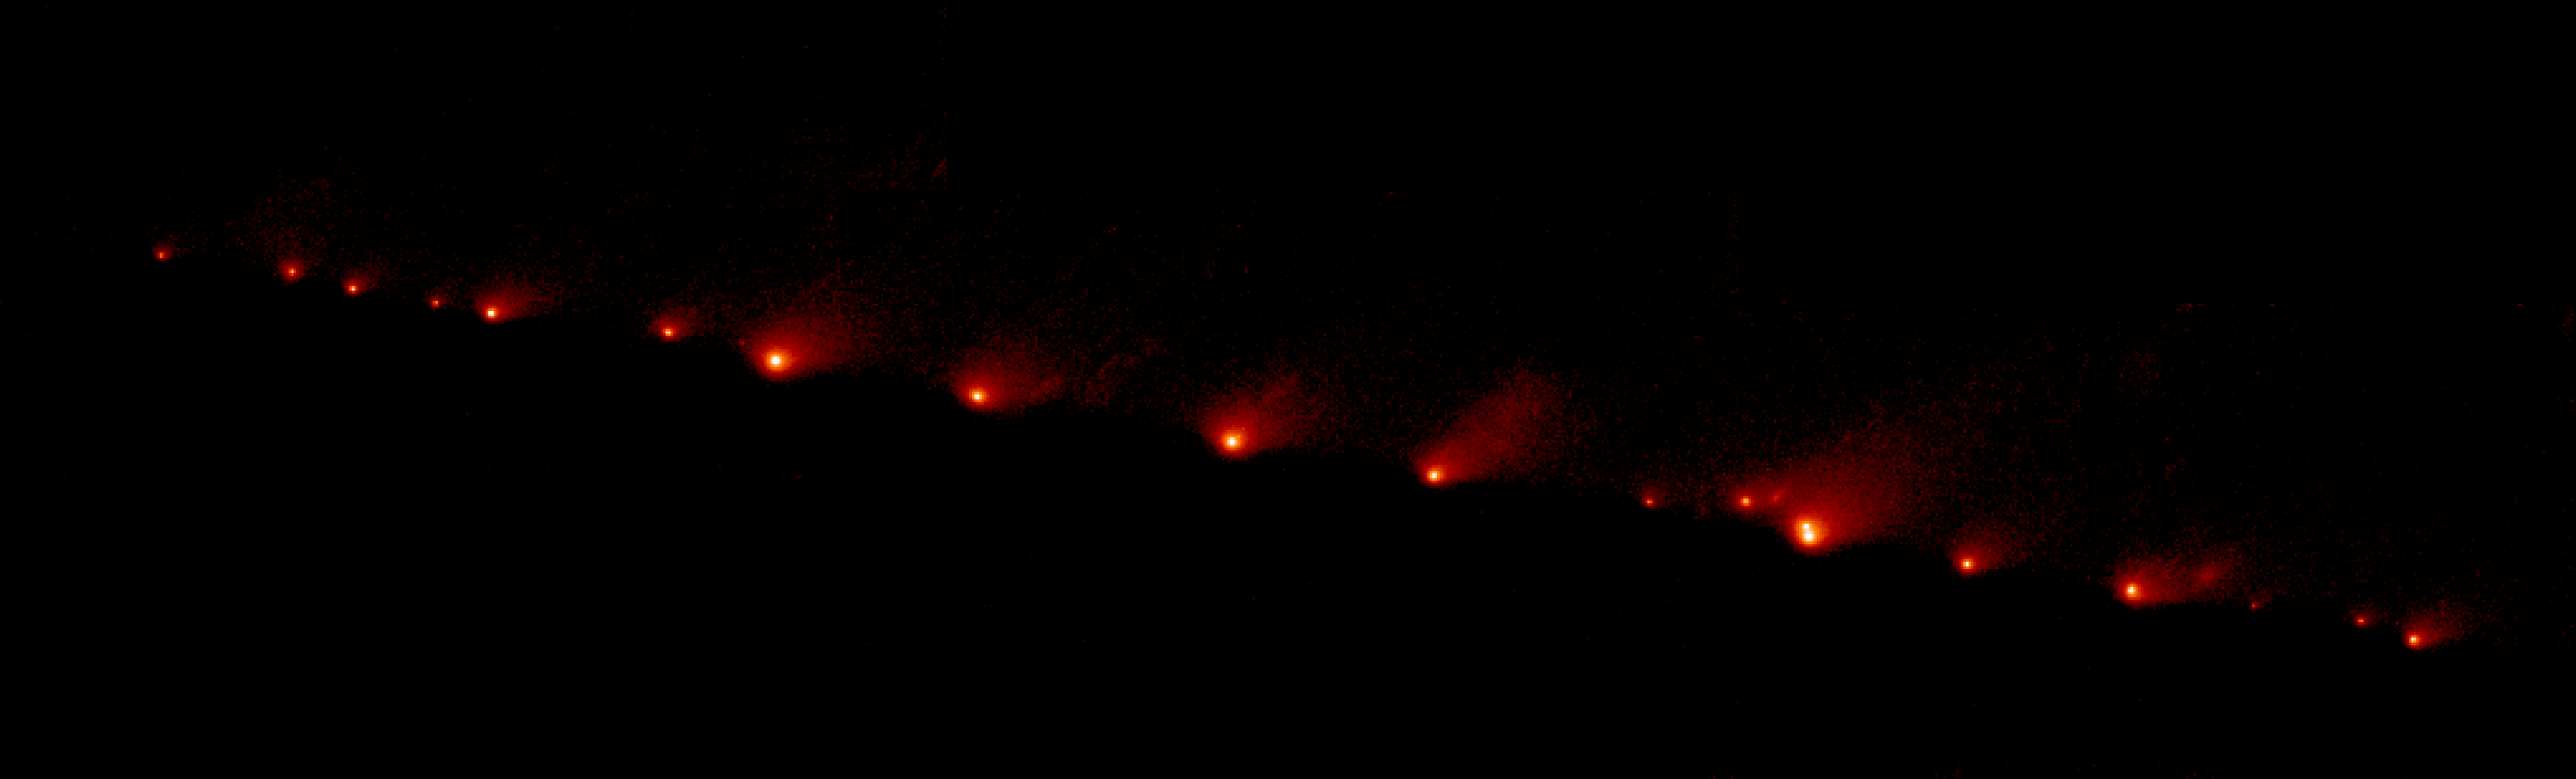 "Collisions in Space, 1. In July 1994 the comet known as Shoemaker-Levy 9 collided with Jupiter, an event which was recorded at the Hawaii observatory using an infrared sensor and a telescope equipped with ""adaptative optics"" (to neutralize the effect of the earth's atmosphere). First the comet's nucleus was broken into 21 pieces by the tidal forces generated by the giant planet. Then the fragments plunged into Jupiter's atmosphere, causing huge explosions -some of them equivalent to the detonation of 100 million megatons of TNT: observers reported great mushroom clouds appearing about ten seconds after each impact (fig. 275). Scientists believe that the earth suffered similar collisions four billion years ago and, since comets contain large amounts of water, carbon and organic molecules, some researchers reckon that they could have brought the organic matter from which all terrestrial life forms have evolved. Comet Shoemaker-Levy 9 STScI / ESA"